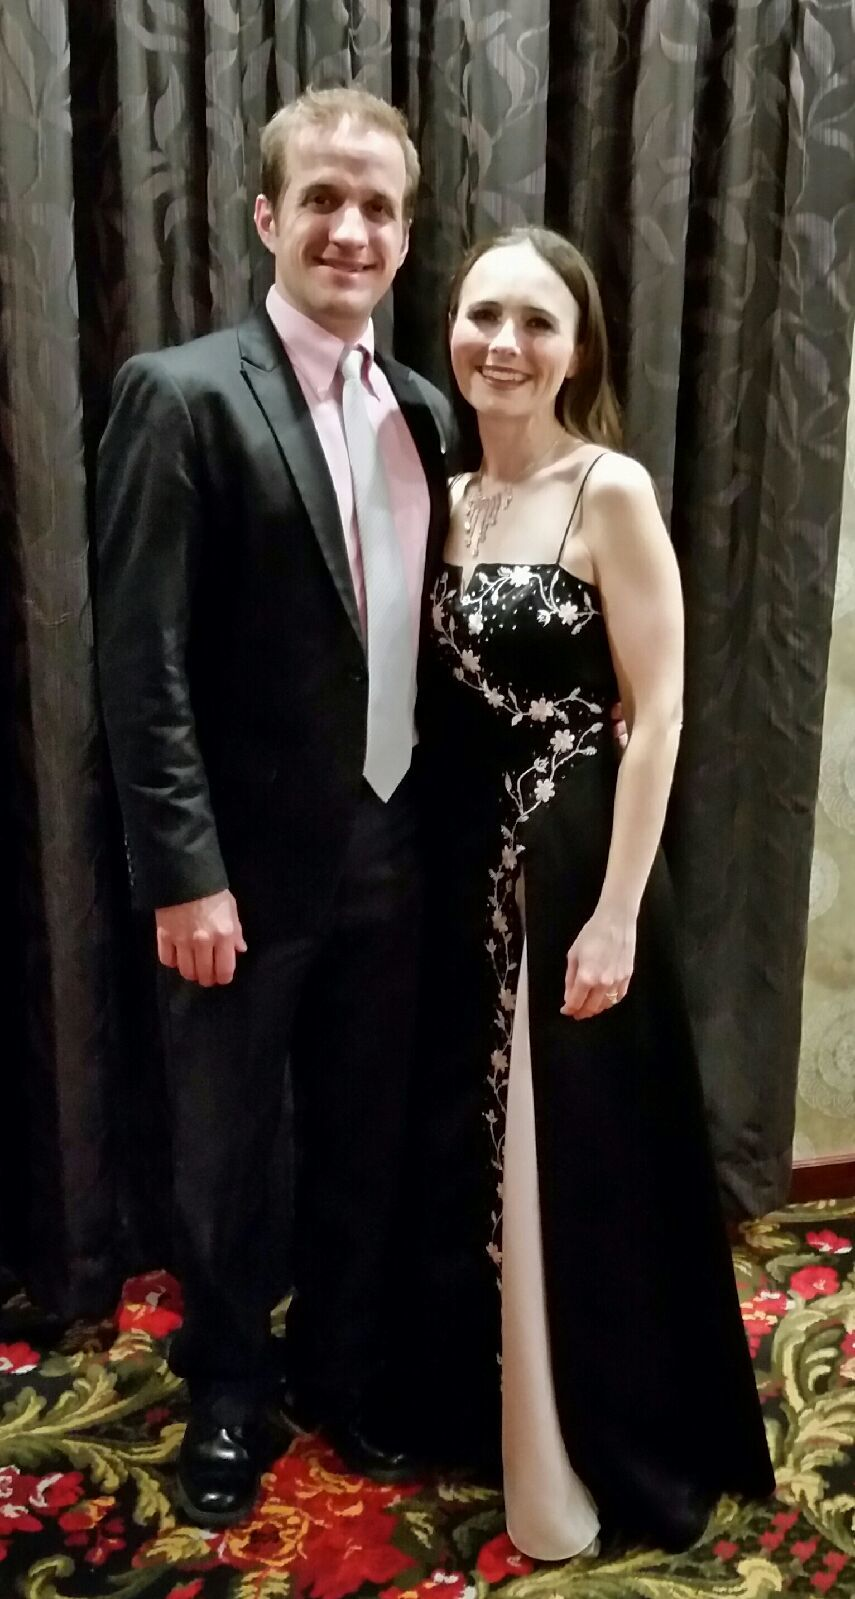 Gregory & Lindy Pendzick - Cruise Directors & Entertainers